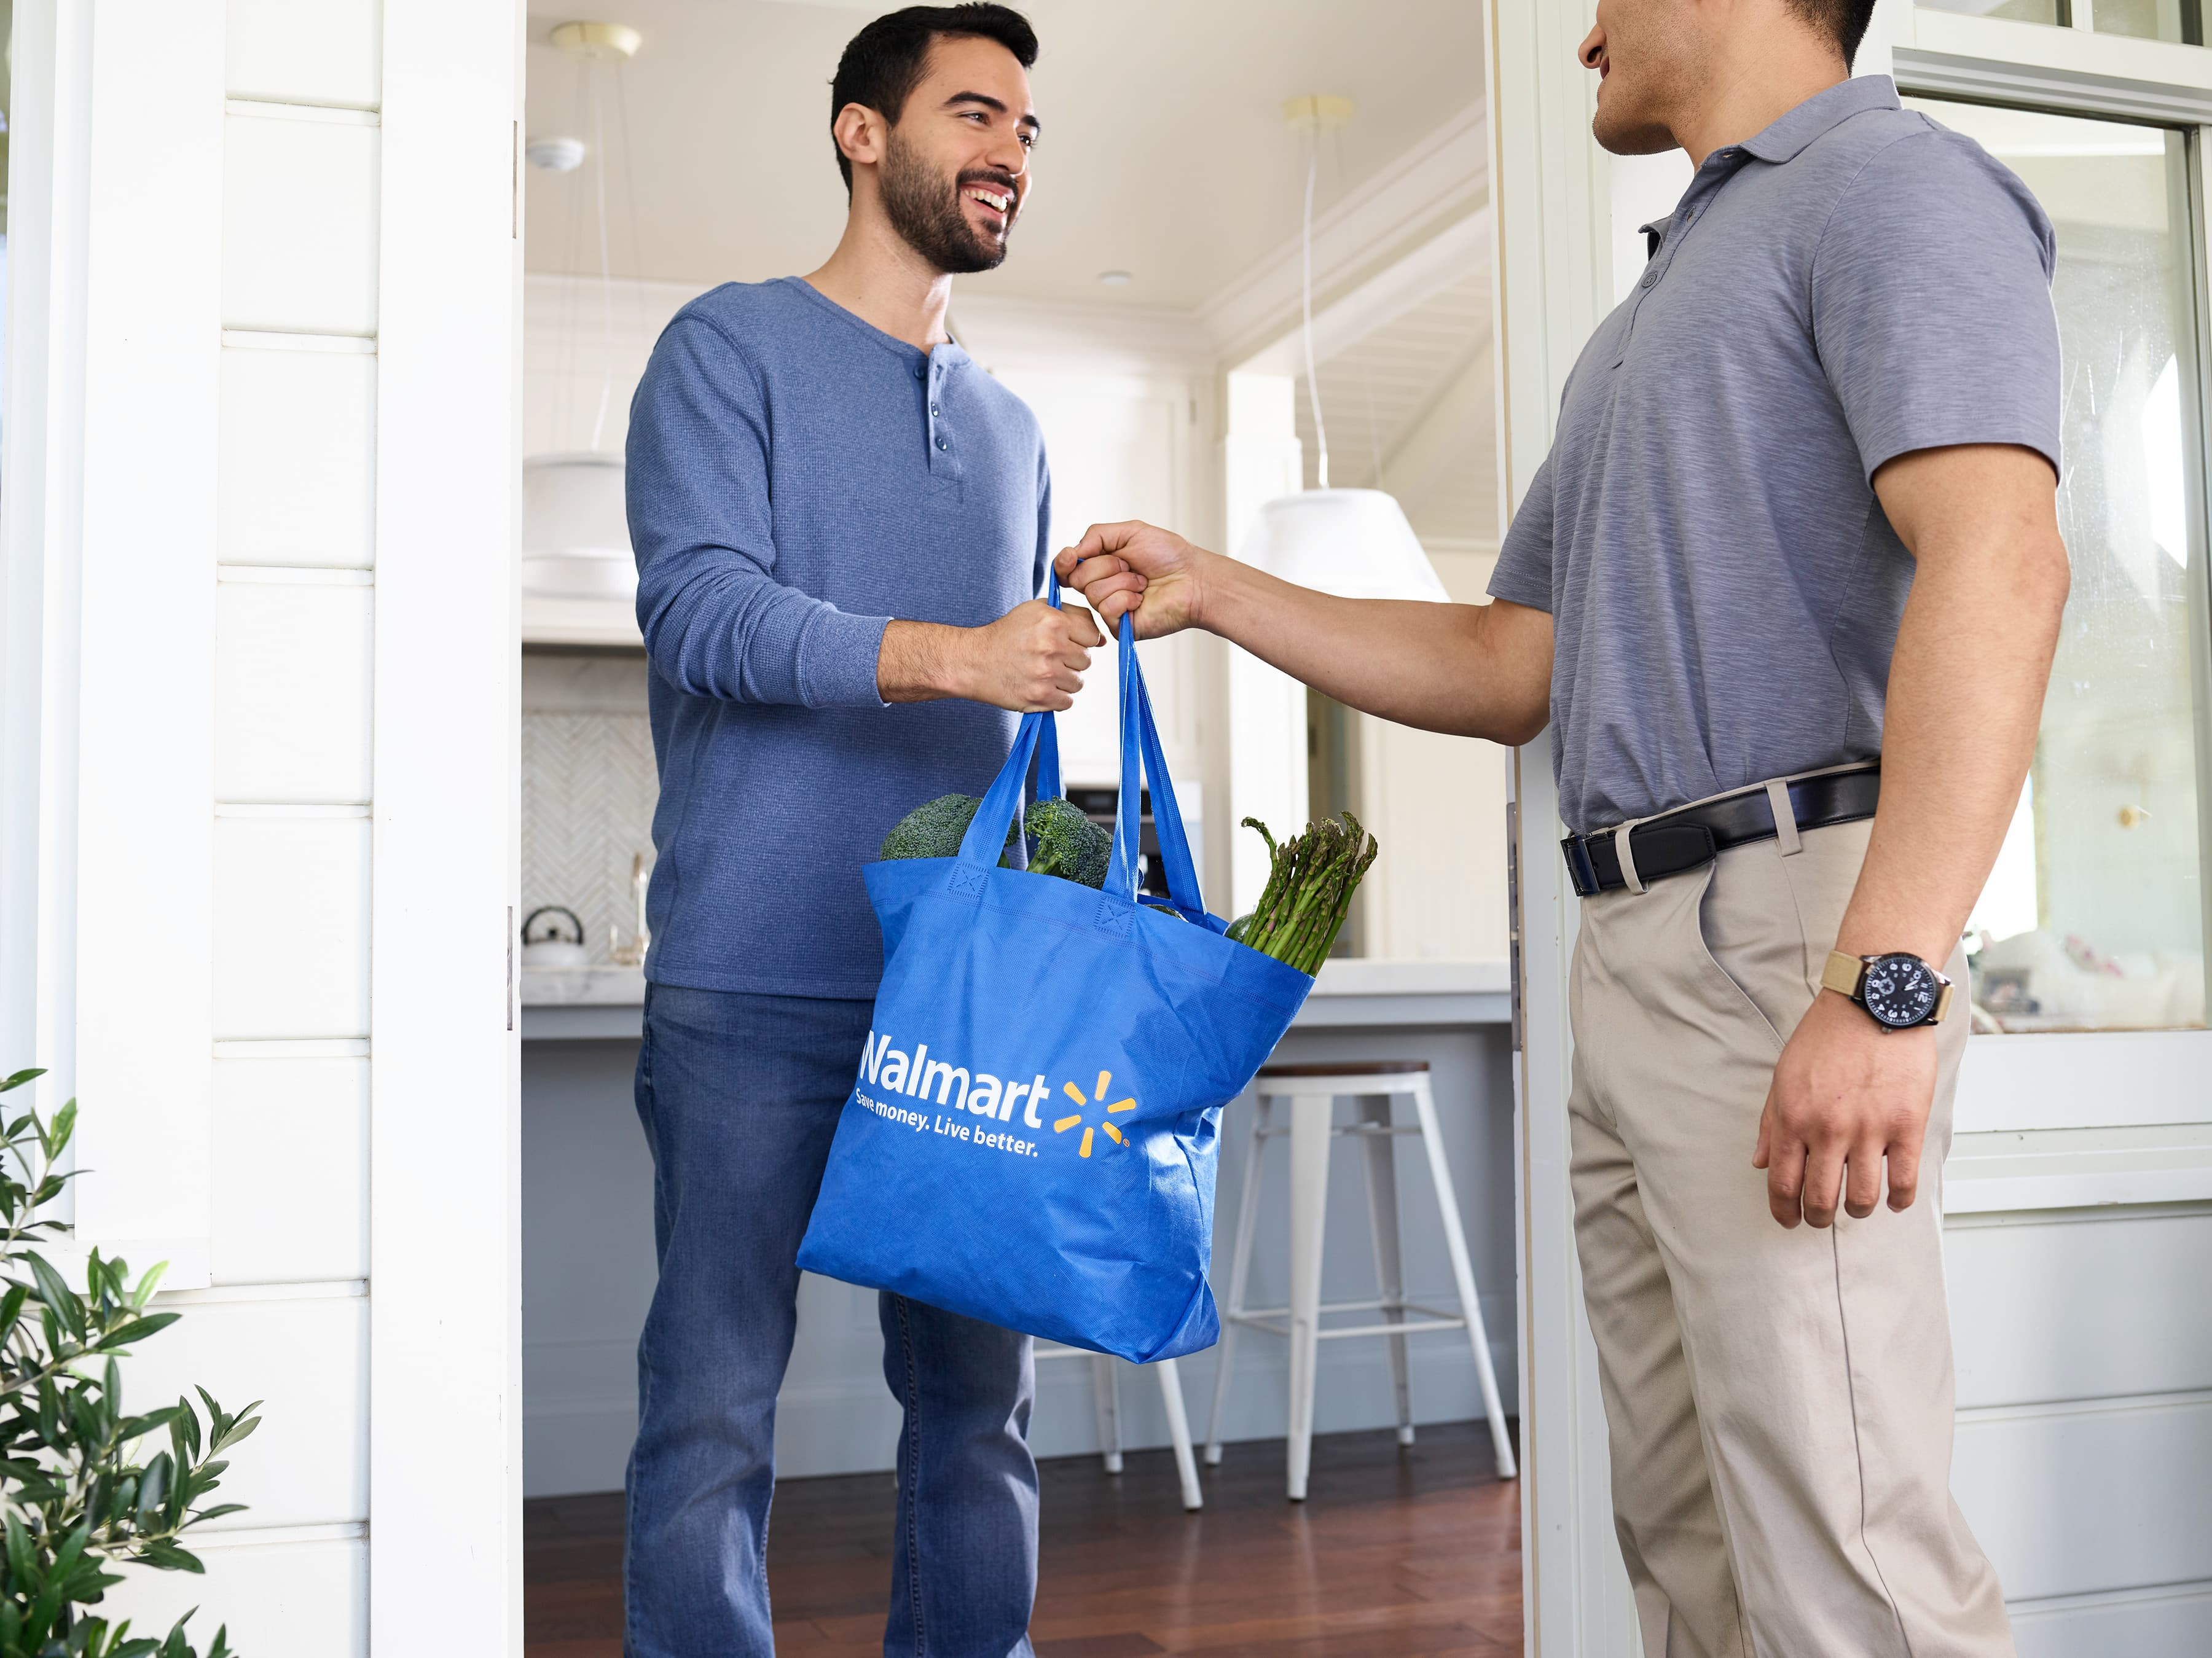 Online Grocery Delivery In Decatur Il 62521 Walmart 2728